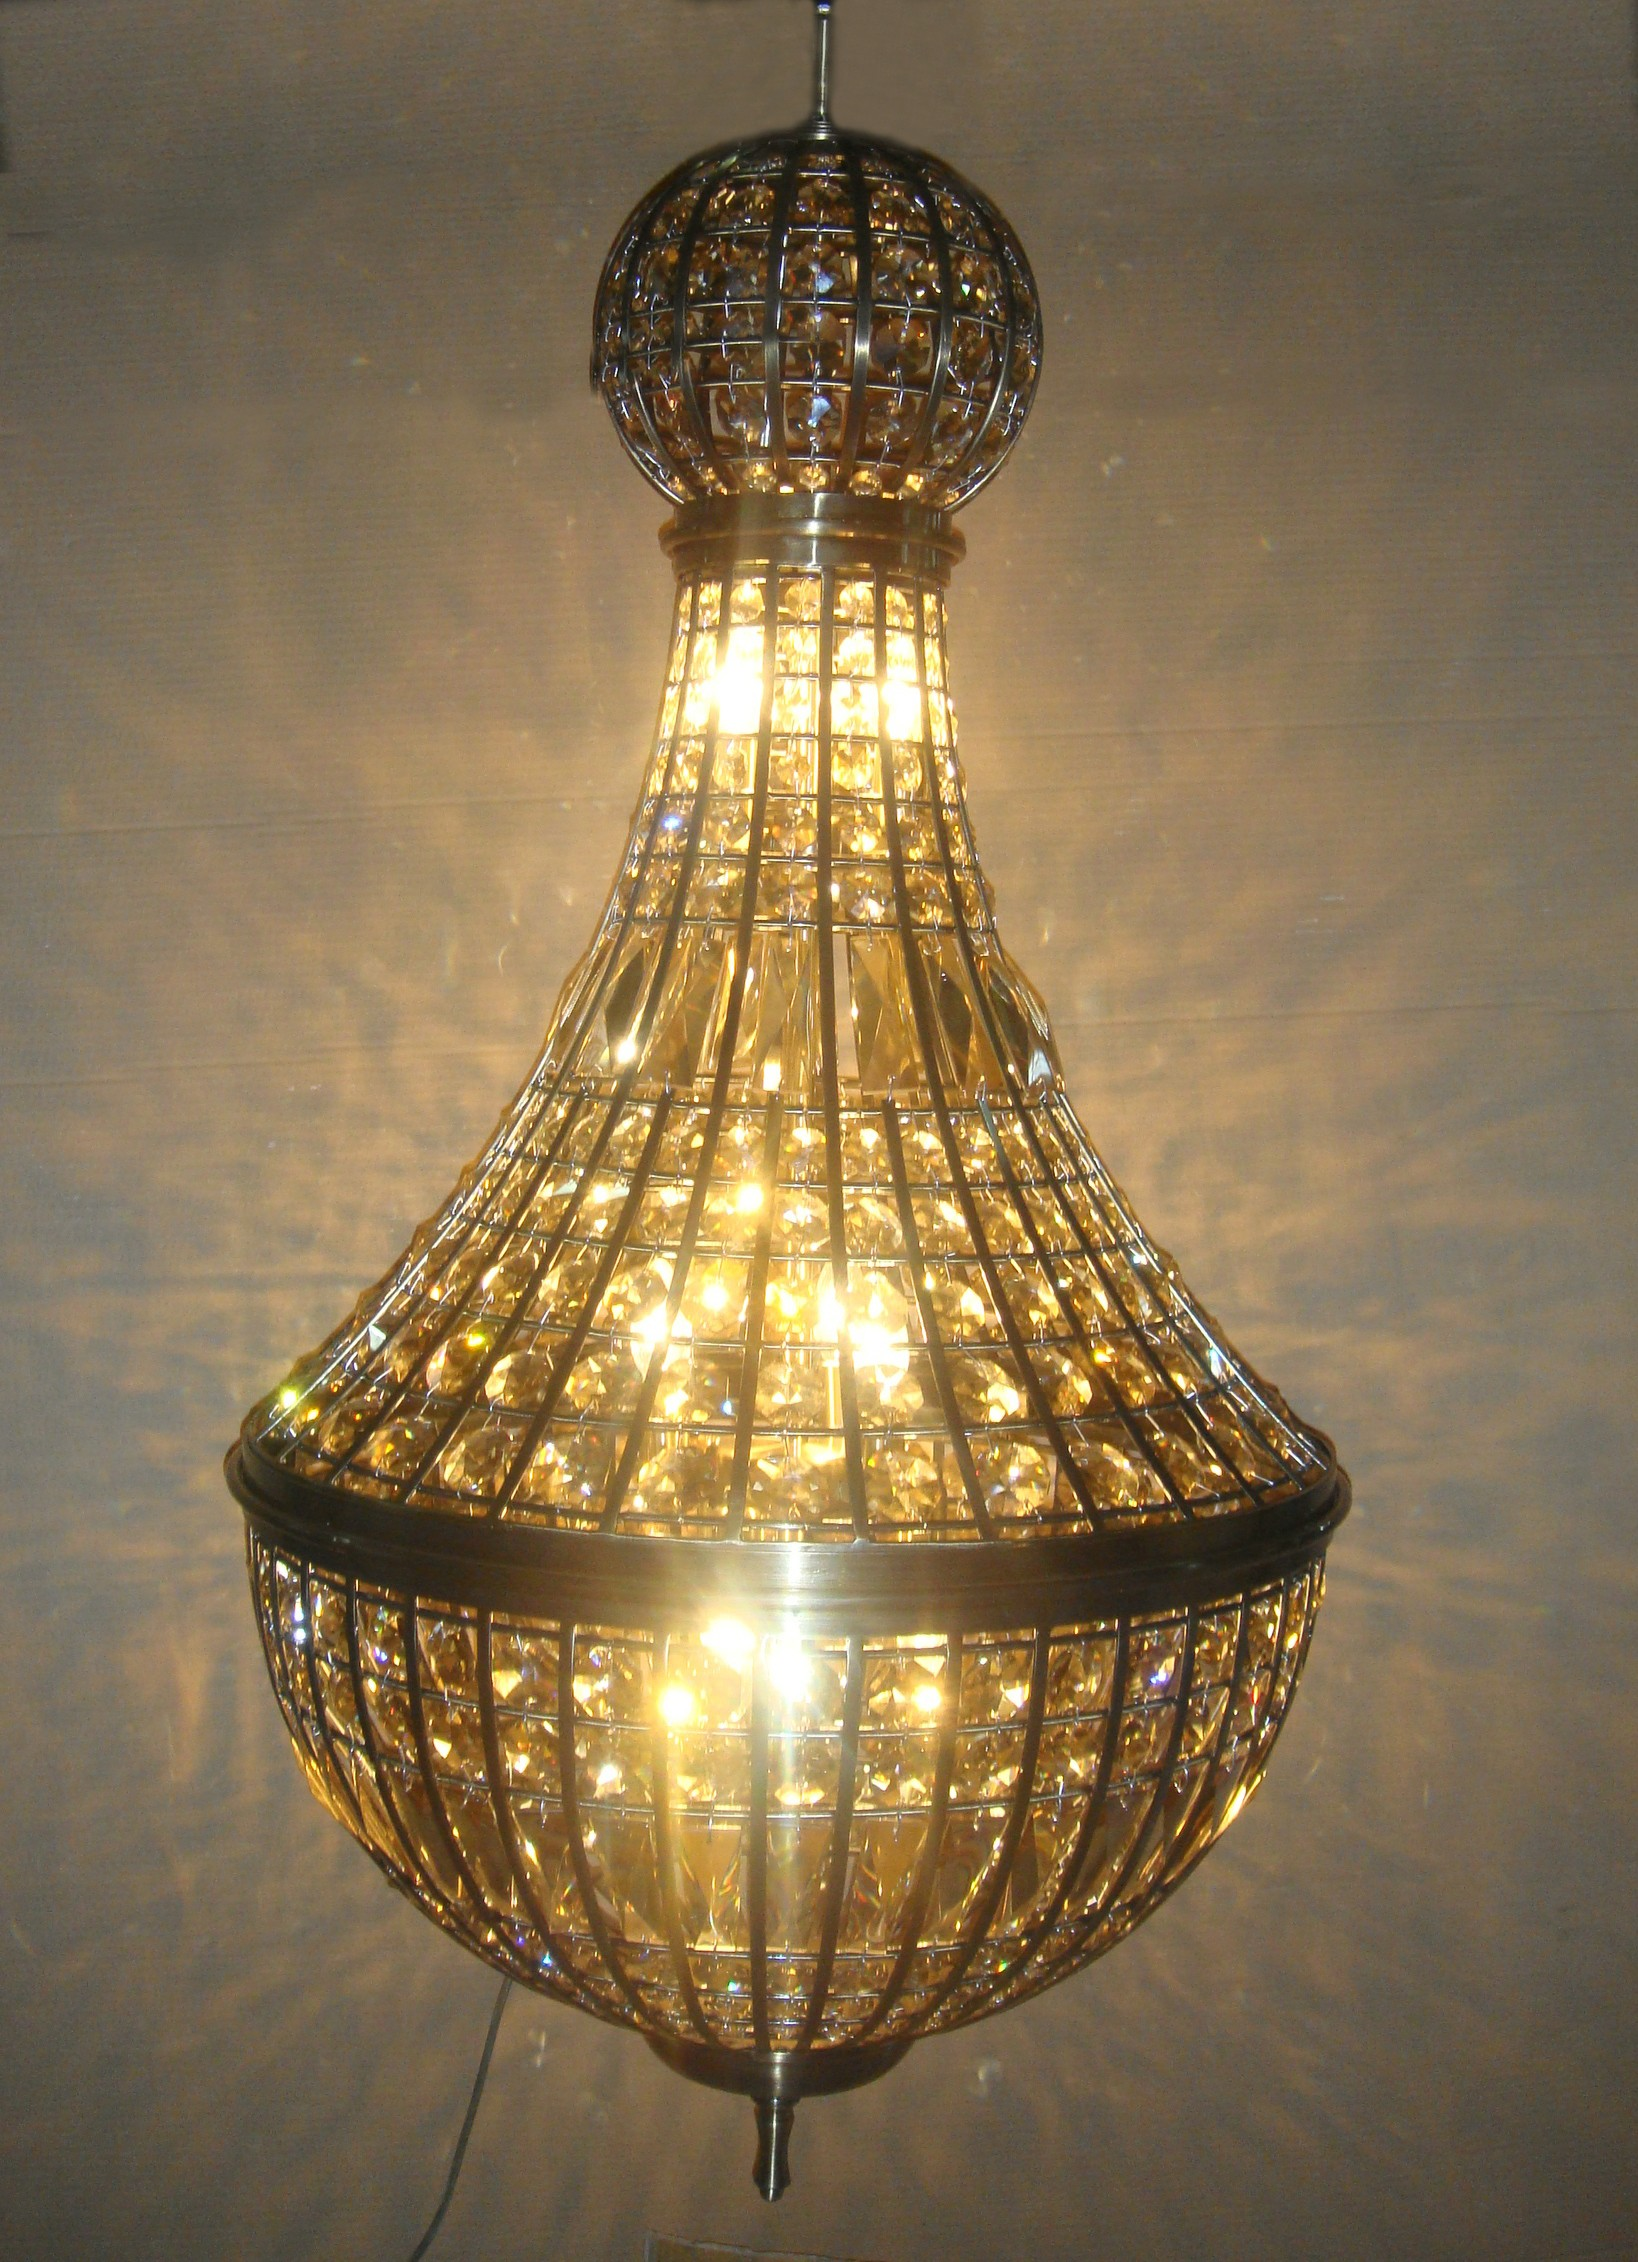 Of kiev 9 light antique bronze crystal large sized chandelier anne of kiev 9 light antique bronze crystal large sized chandelier 492hx254w xtk662359 63 arubaitofo Image collections